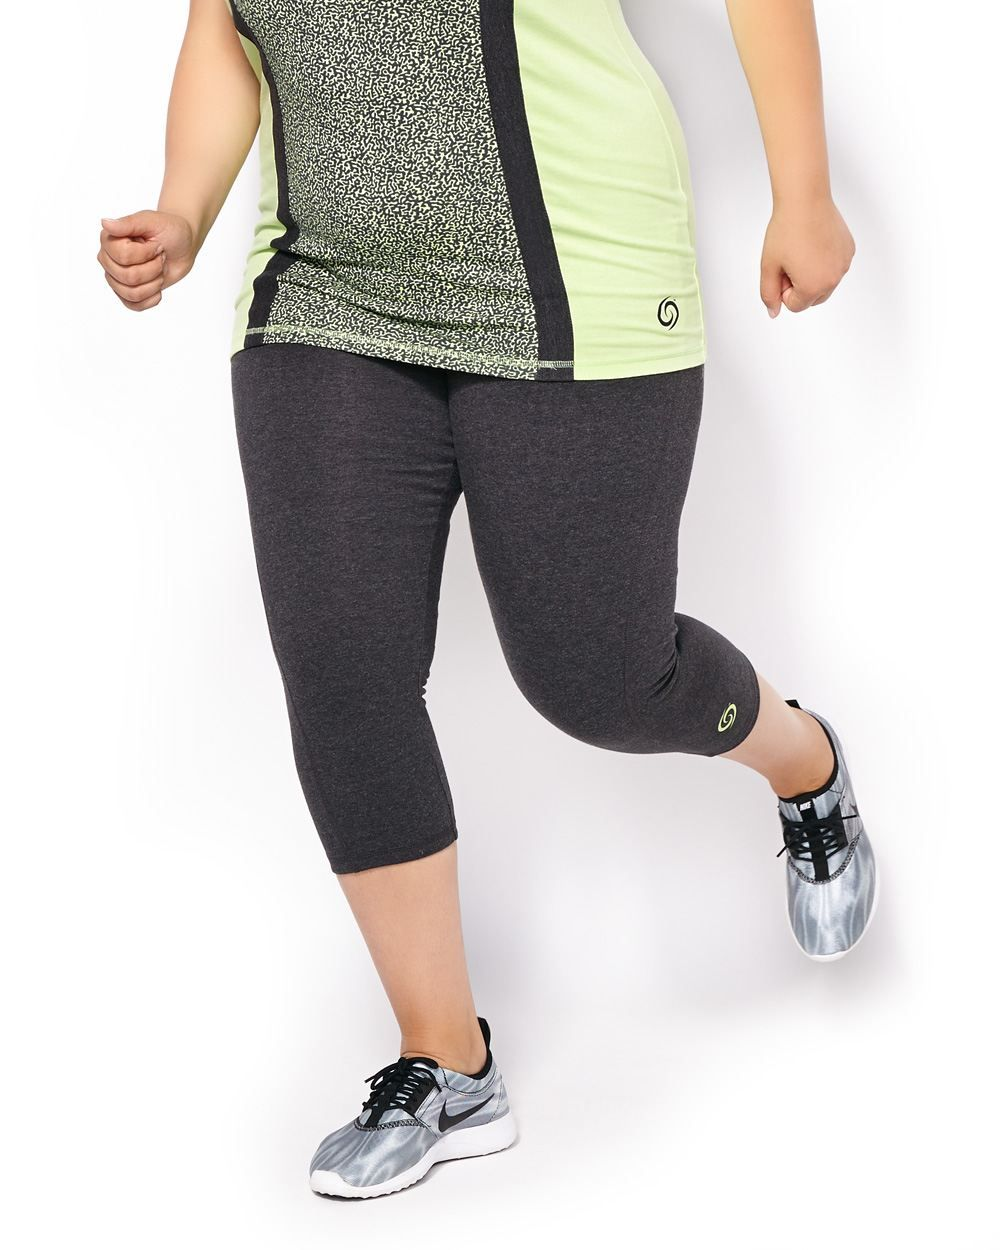 5ccc802524c Moisture Wicking Workout Clothes Plus Size